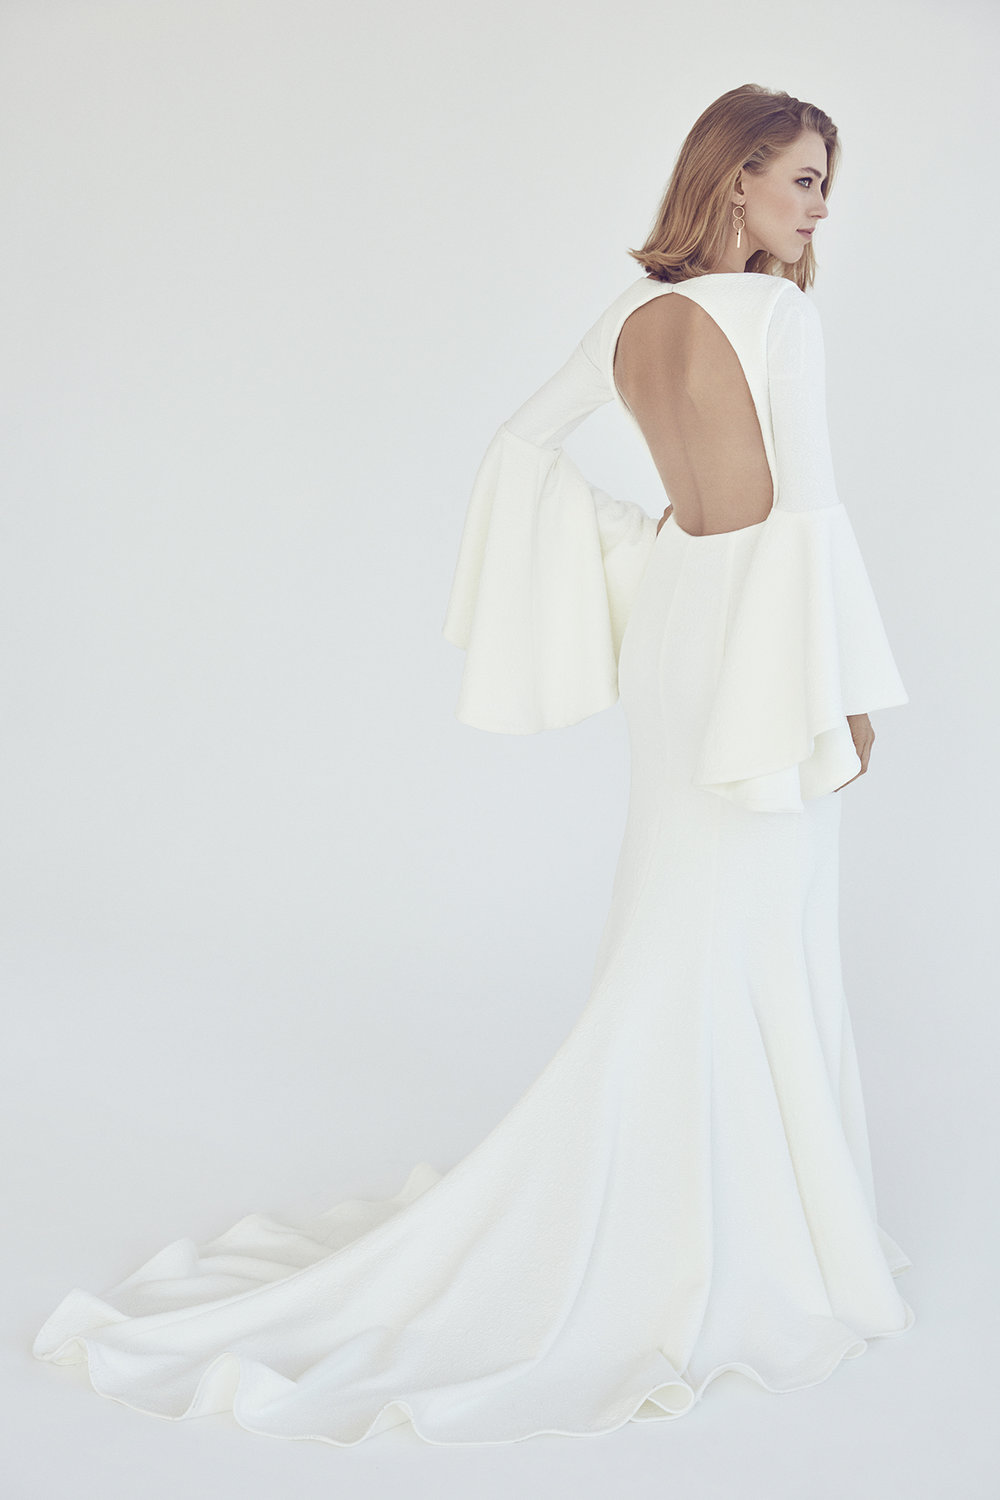 Bell Gown by Suzanne Harward | LOVE FIND CO.